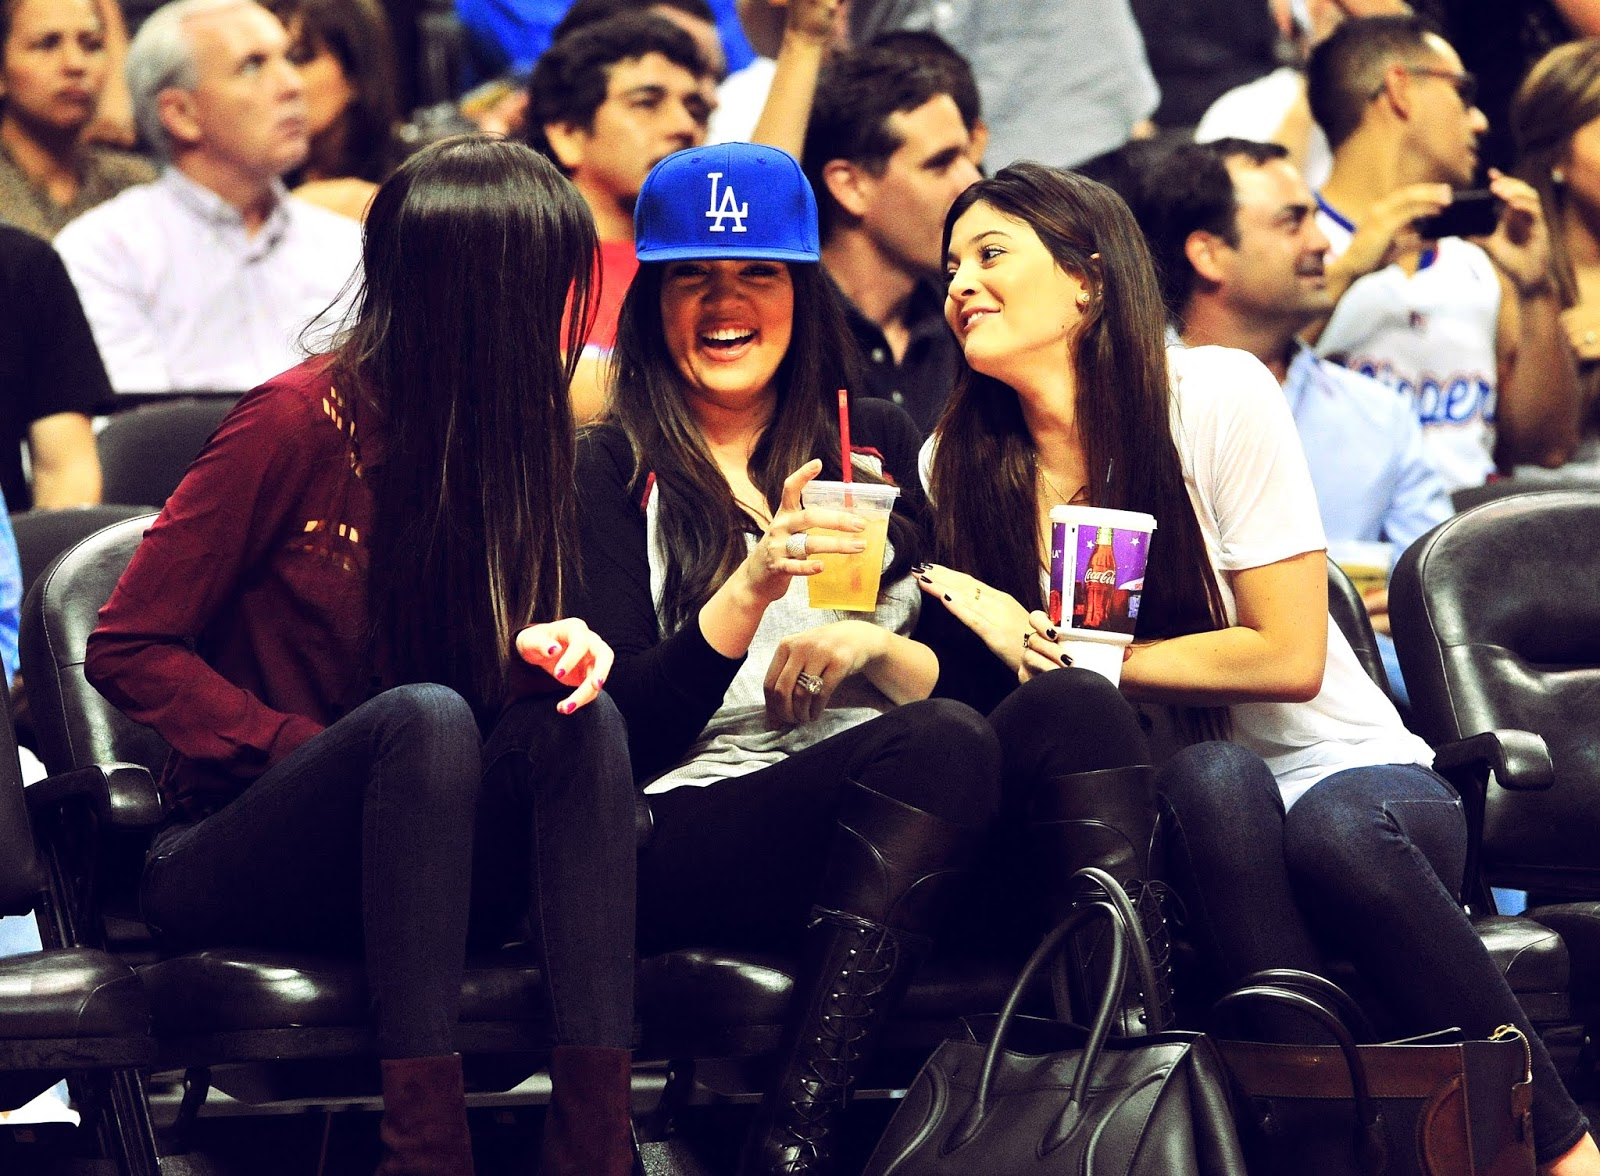 11 - Watching The Los Angeles Clippers Game on October 17, 2012